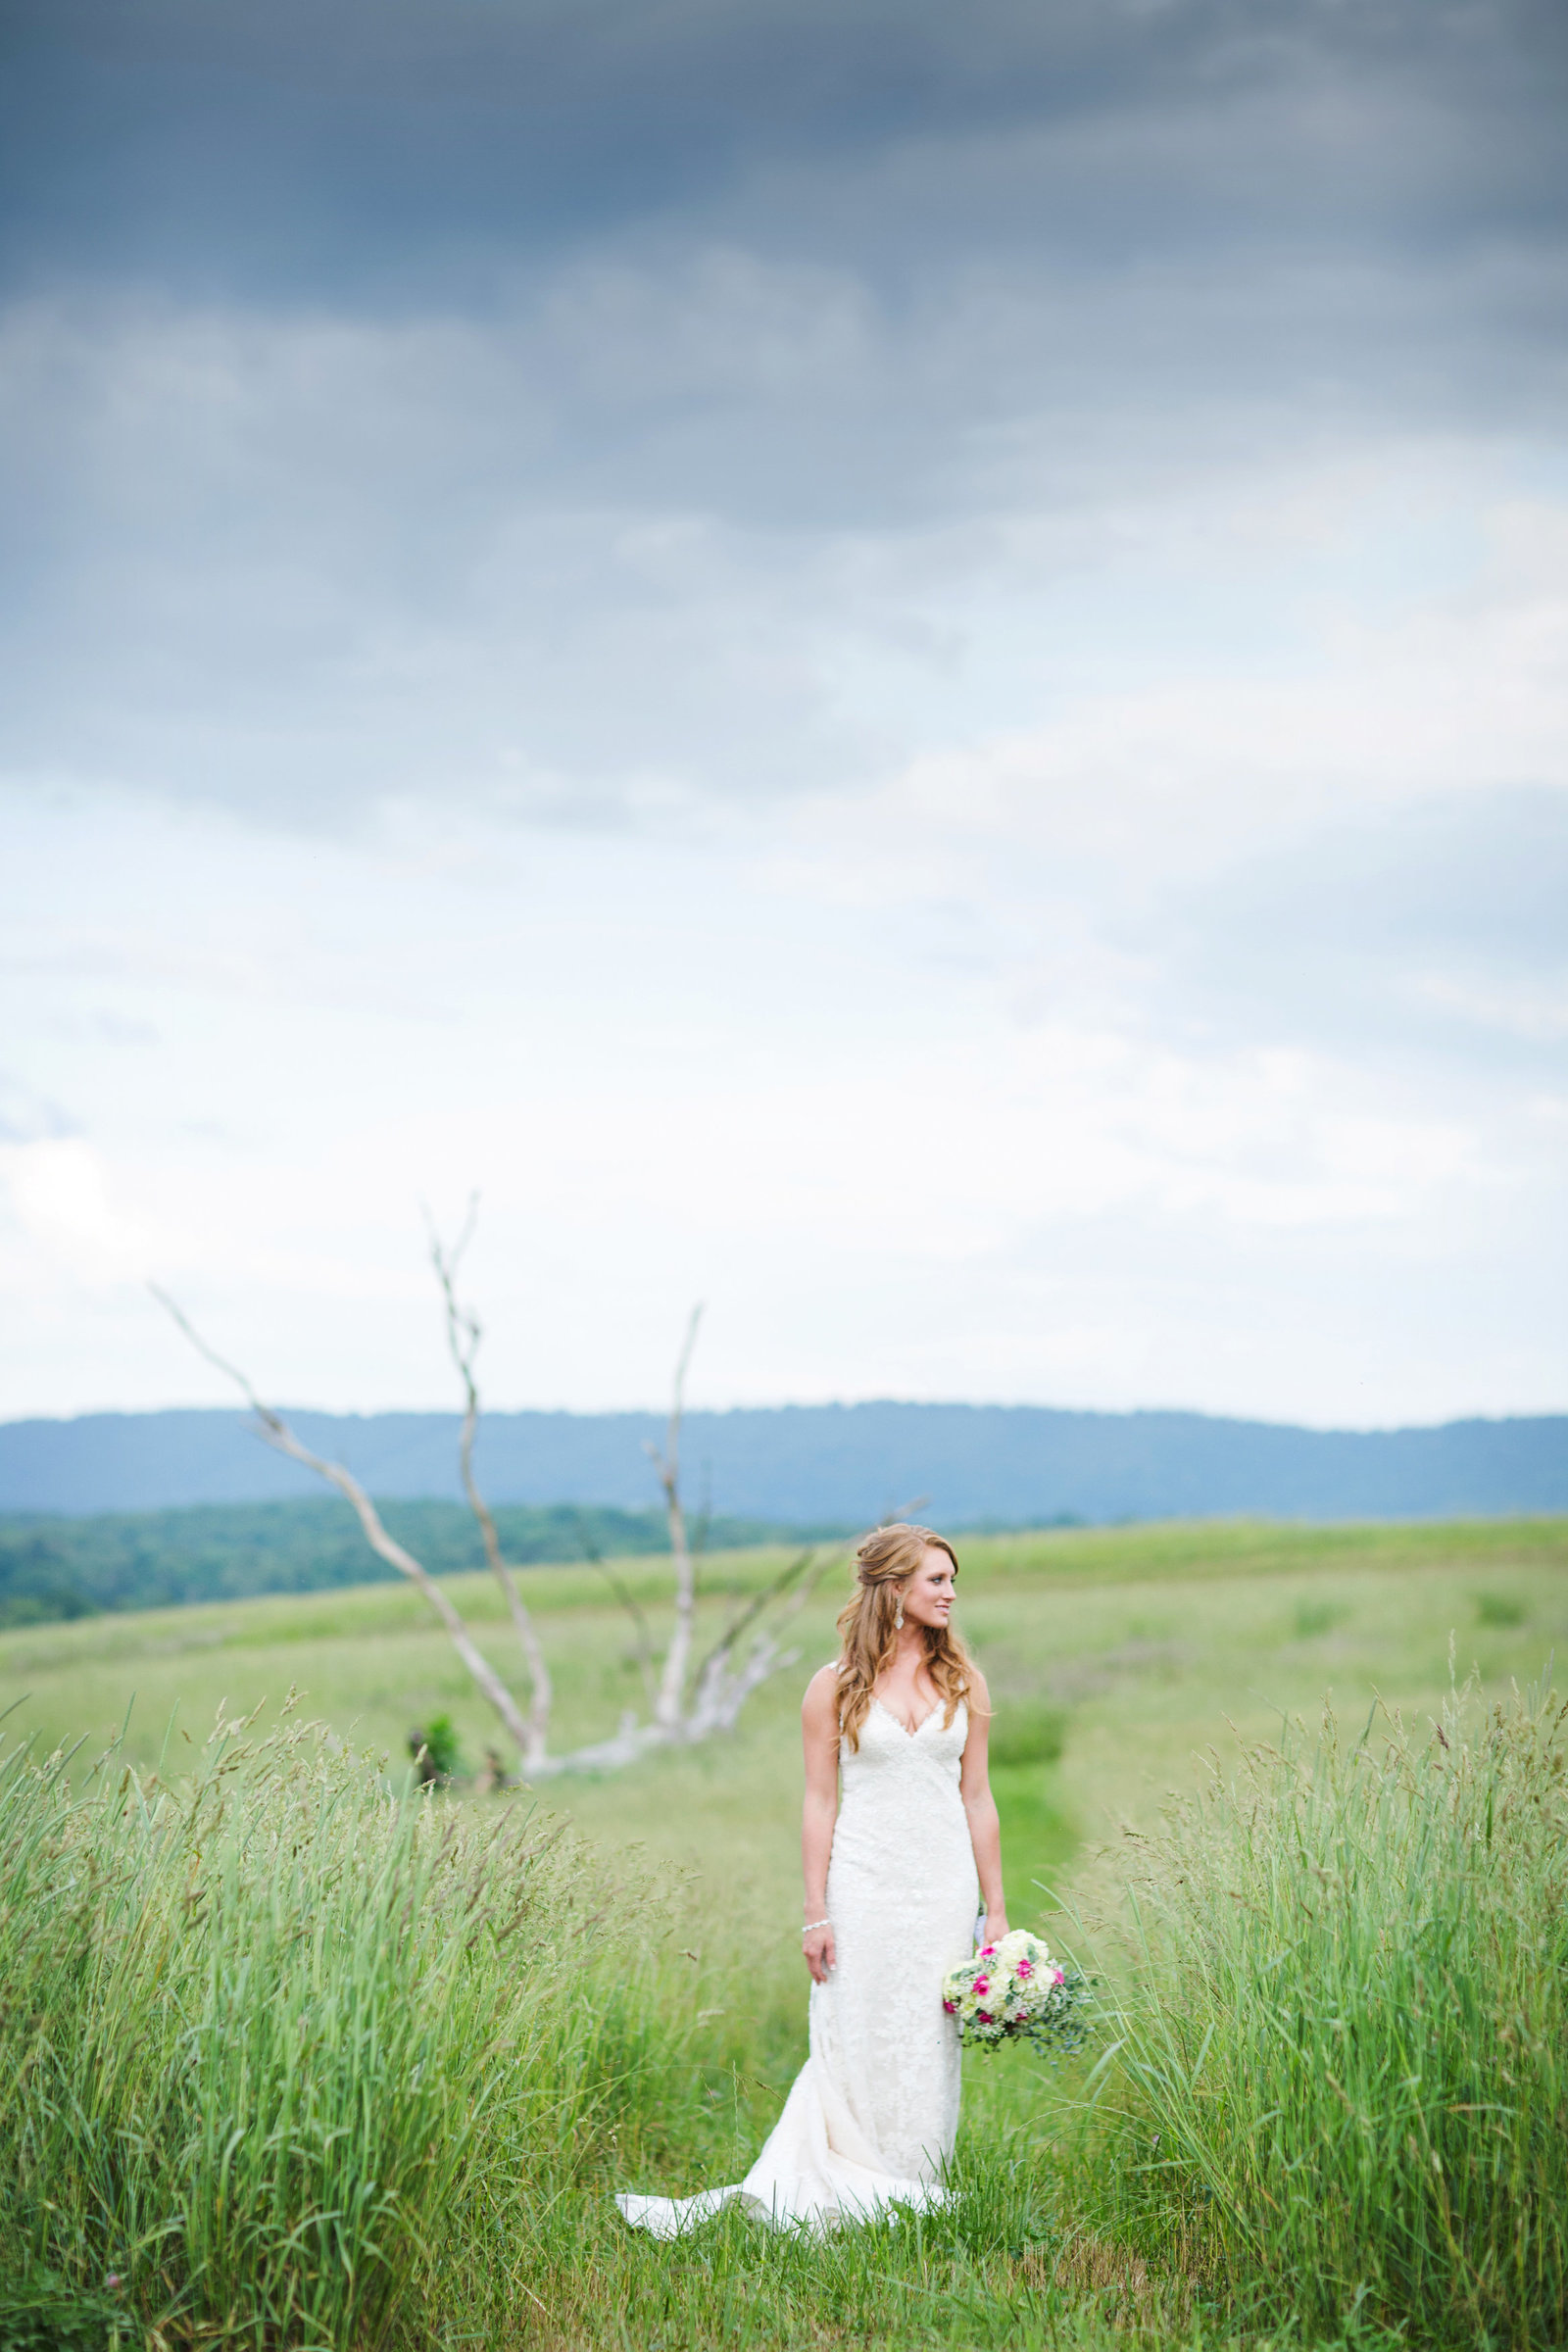 bridal portrait skyryder engagement wedding photography blacksburg roanoke charlottesville lexington radford-016